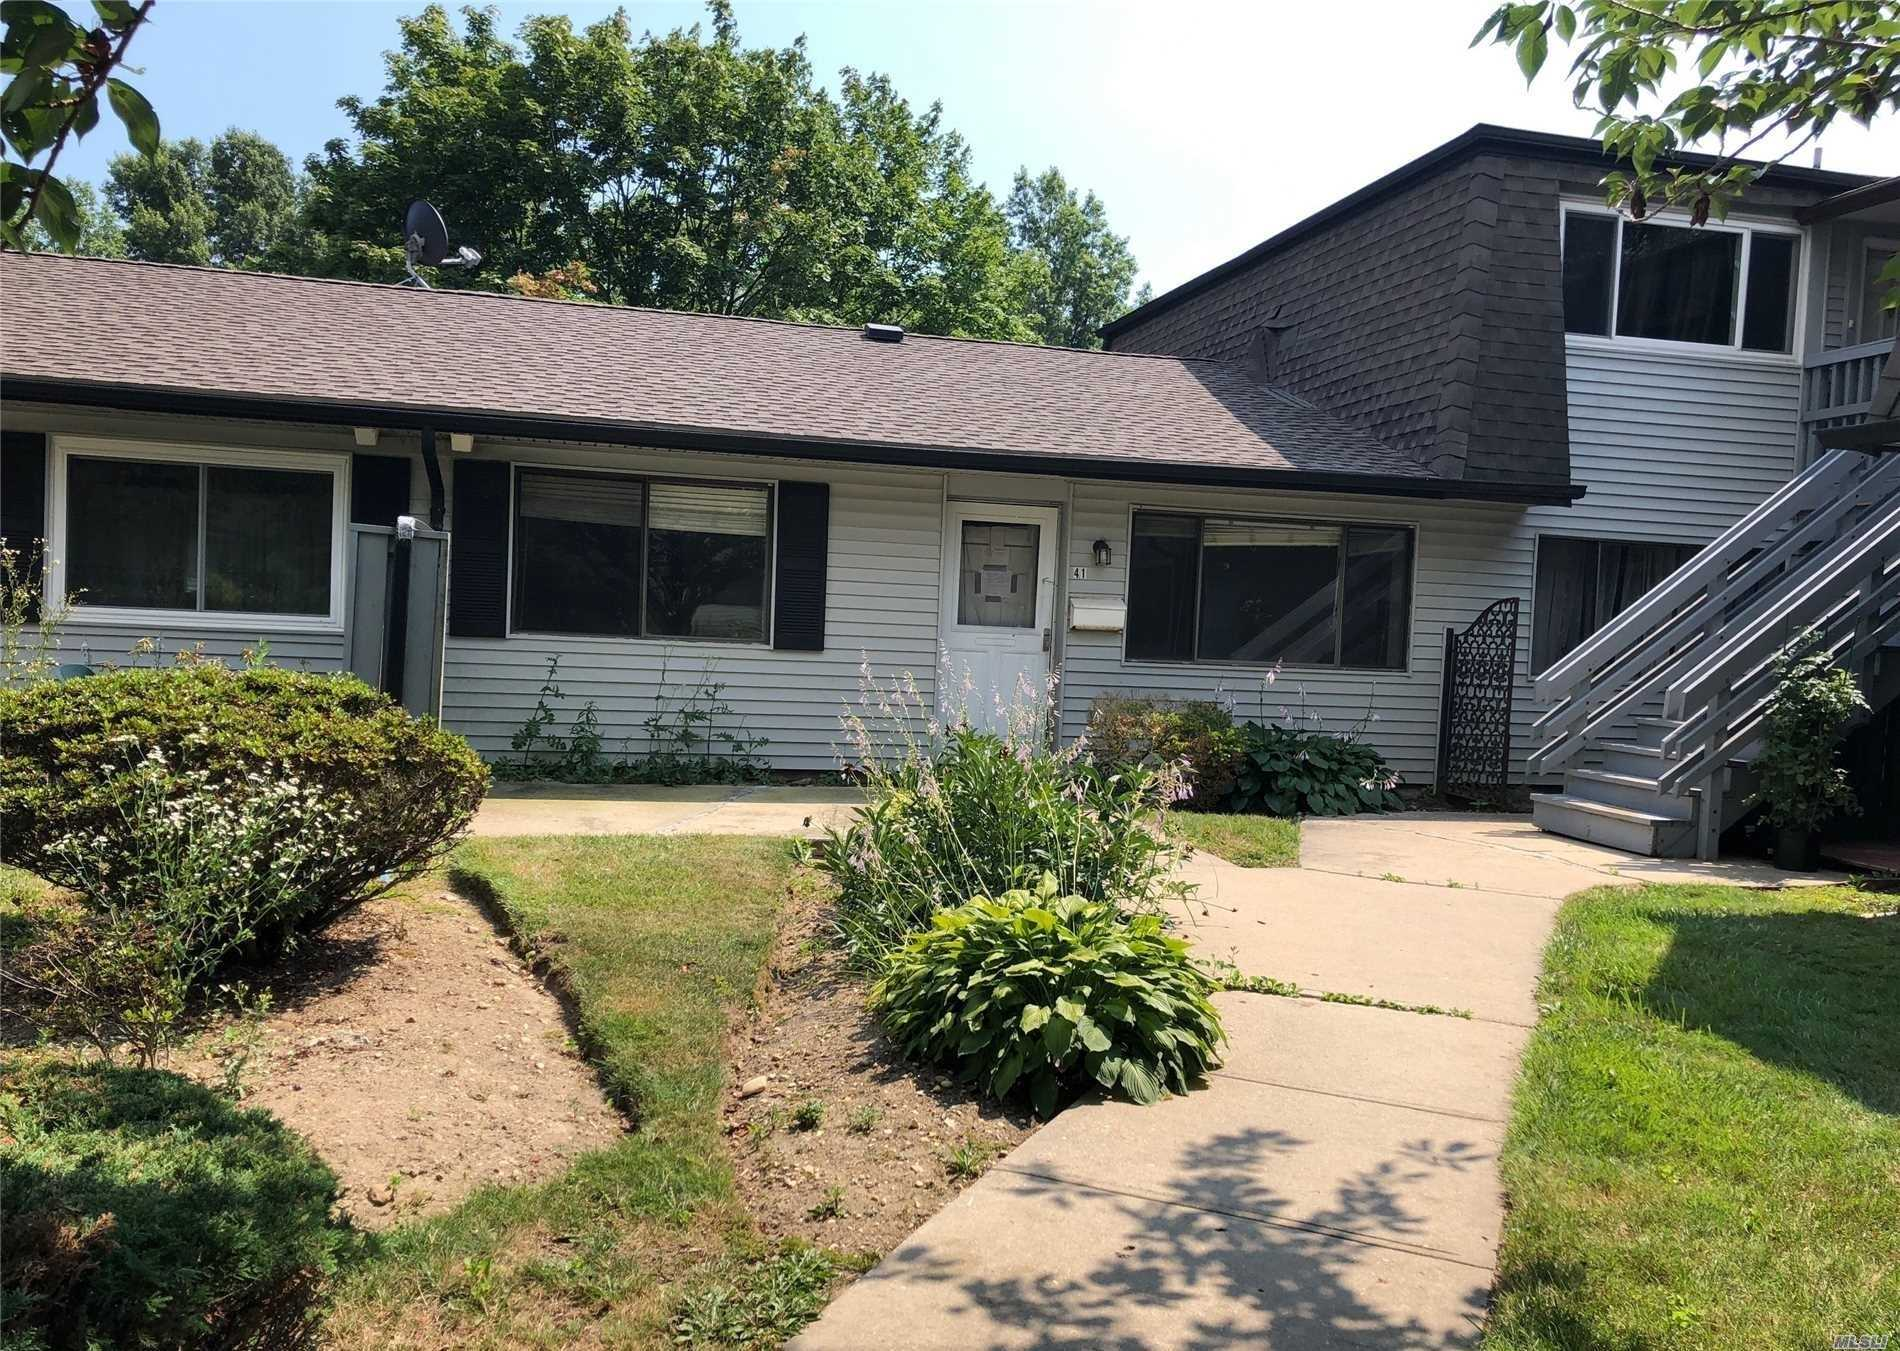 Property for sale at 41 Feller Dr, Central Islip,  NY 11722